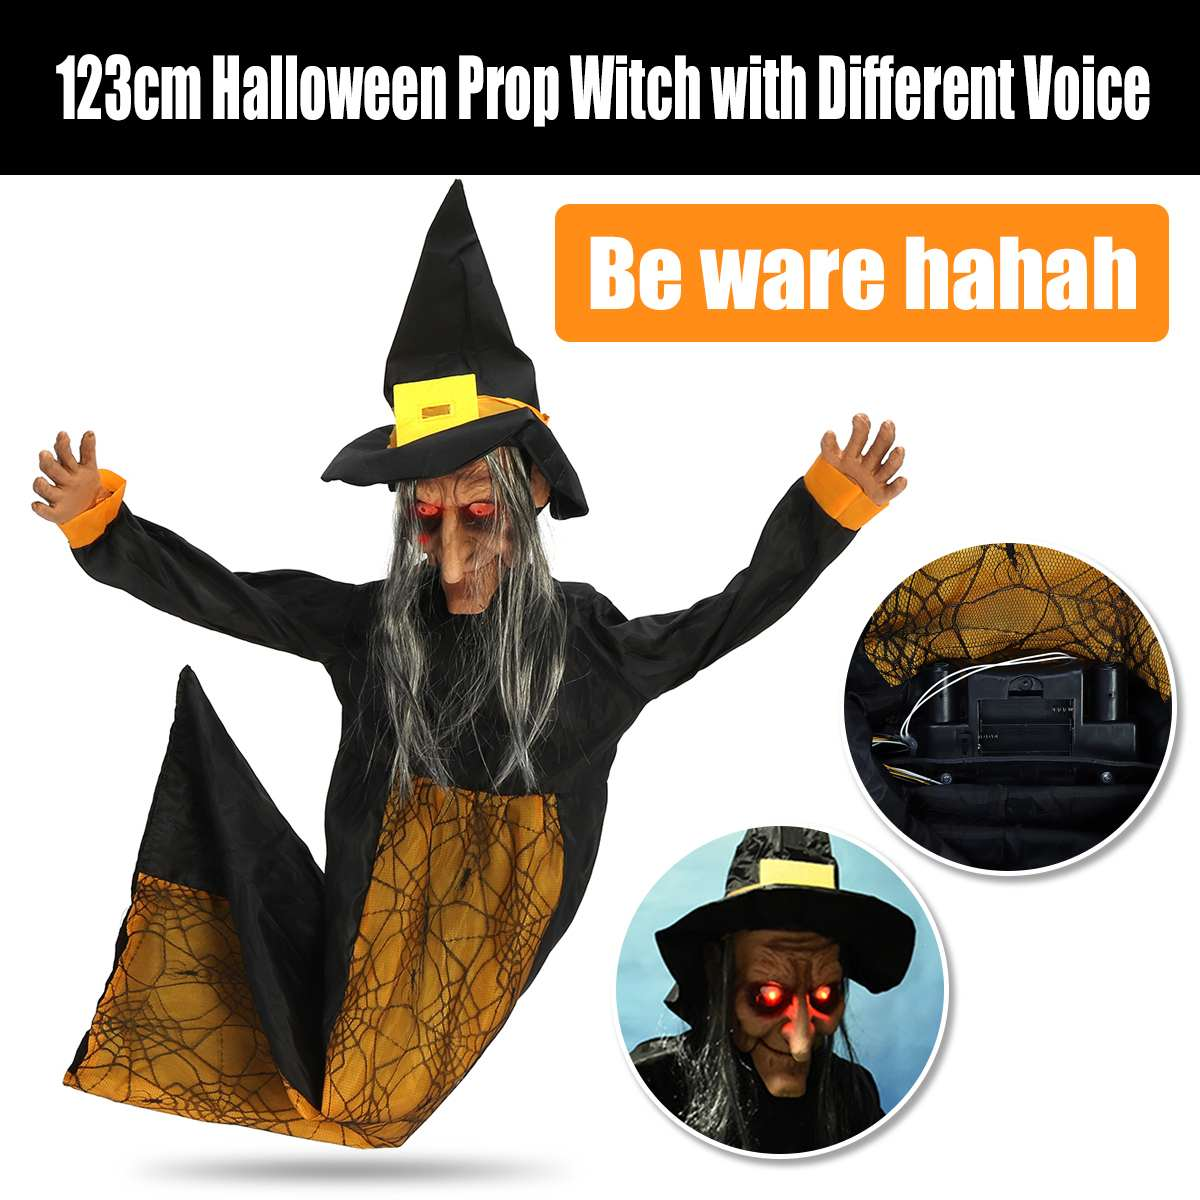 Halloween Scary Props Electric Horror Toys Hanging Witch Ornaments Eyes Glowing Screaming Witch Pendant Ghost Party Decorations